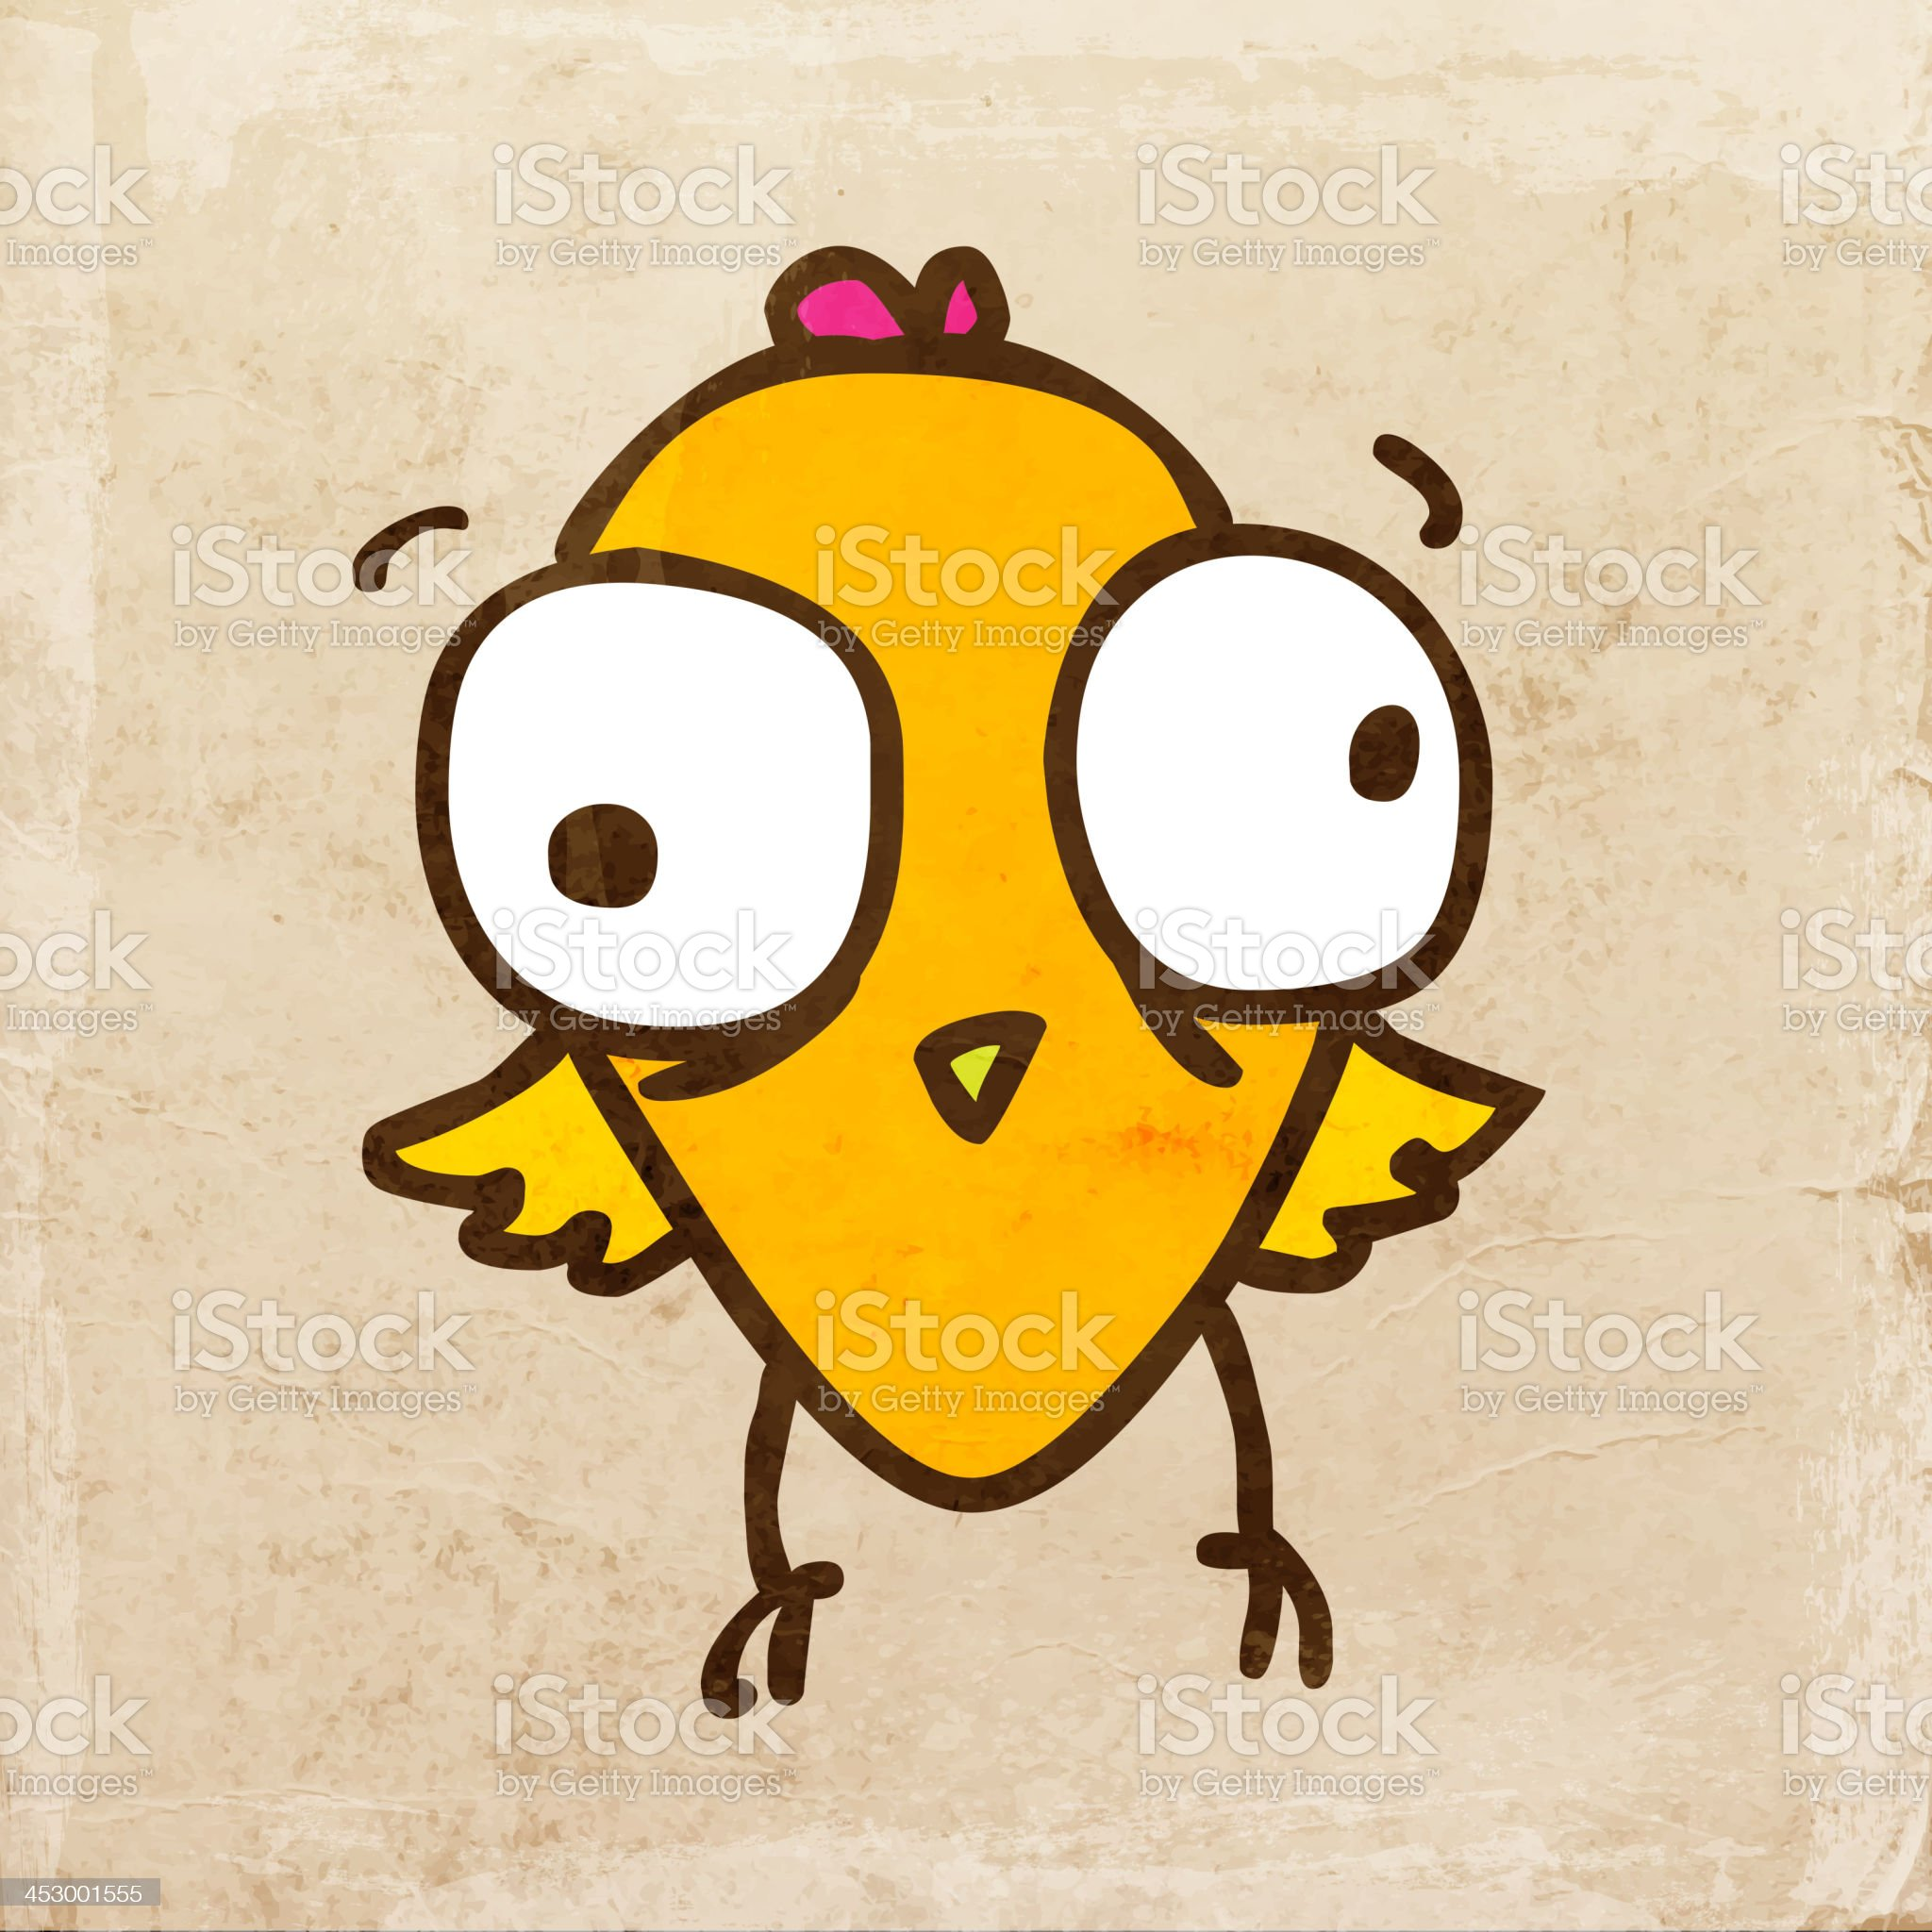 Cute Bird on Grunge Background royalty-free stock vector art